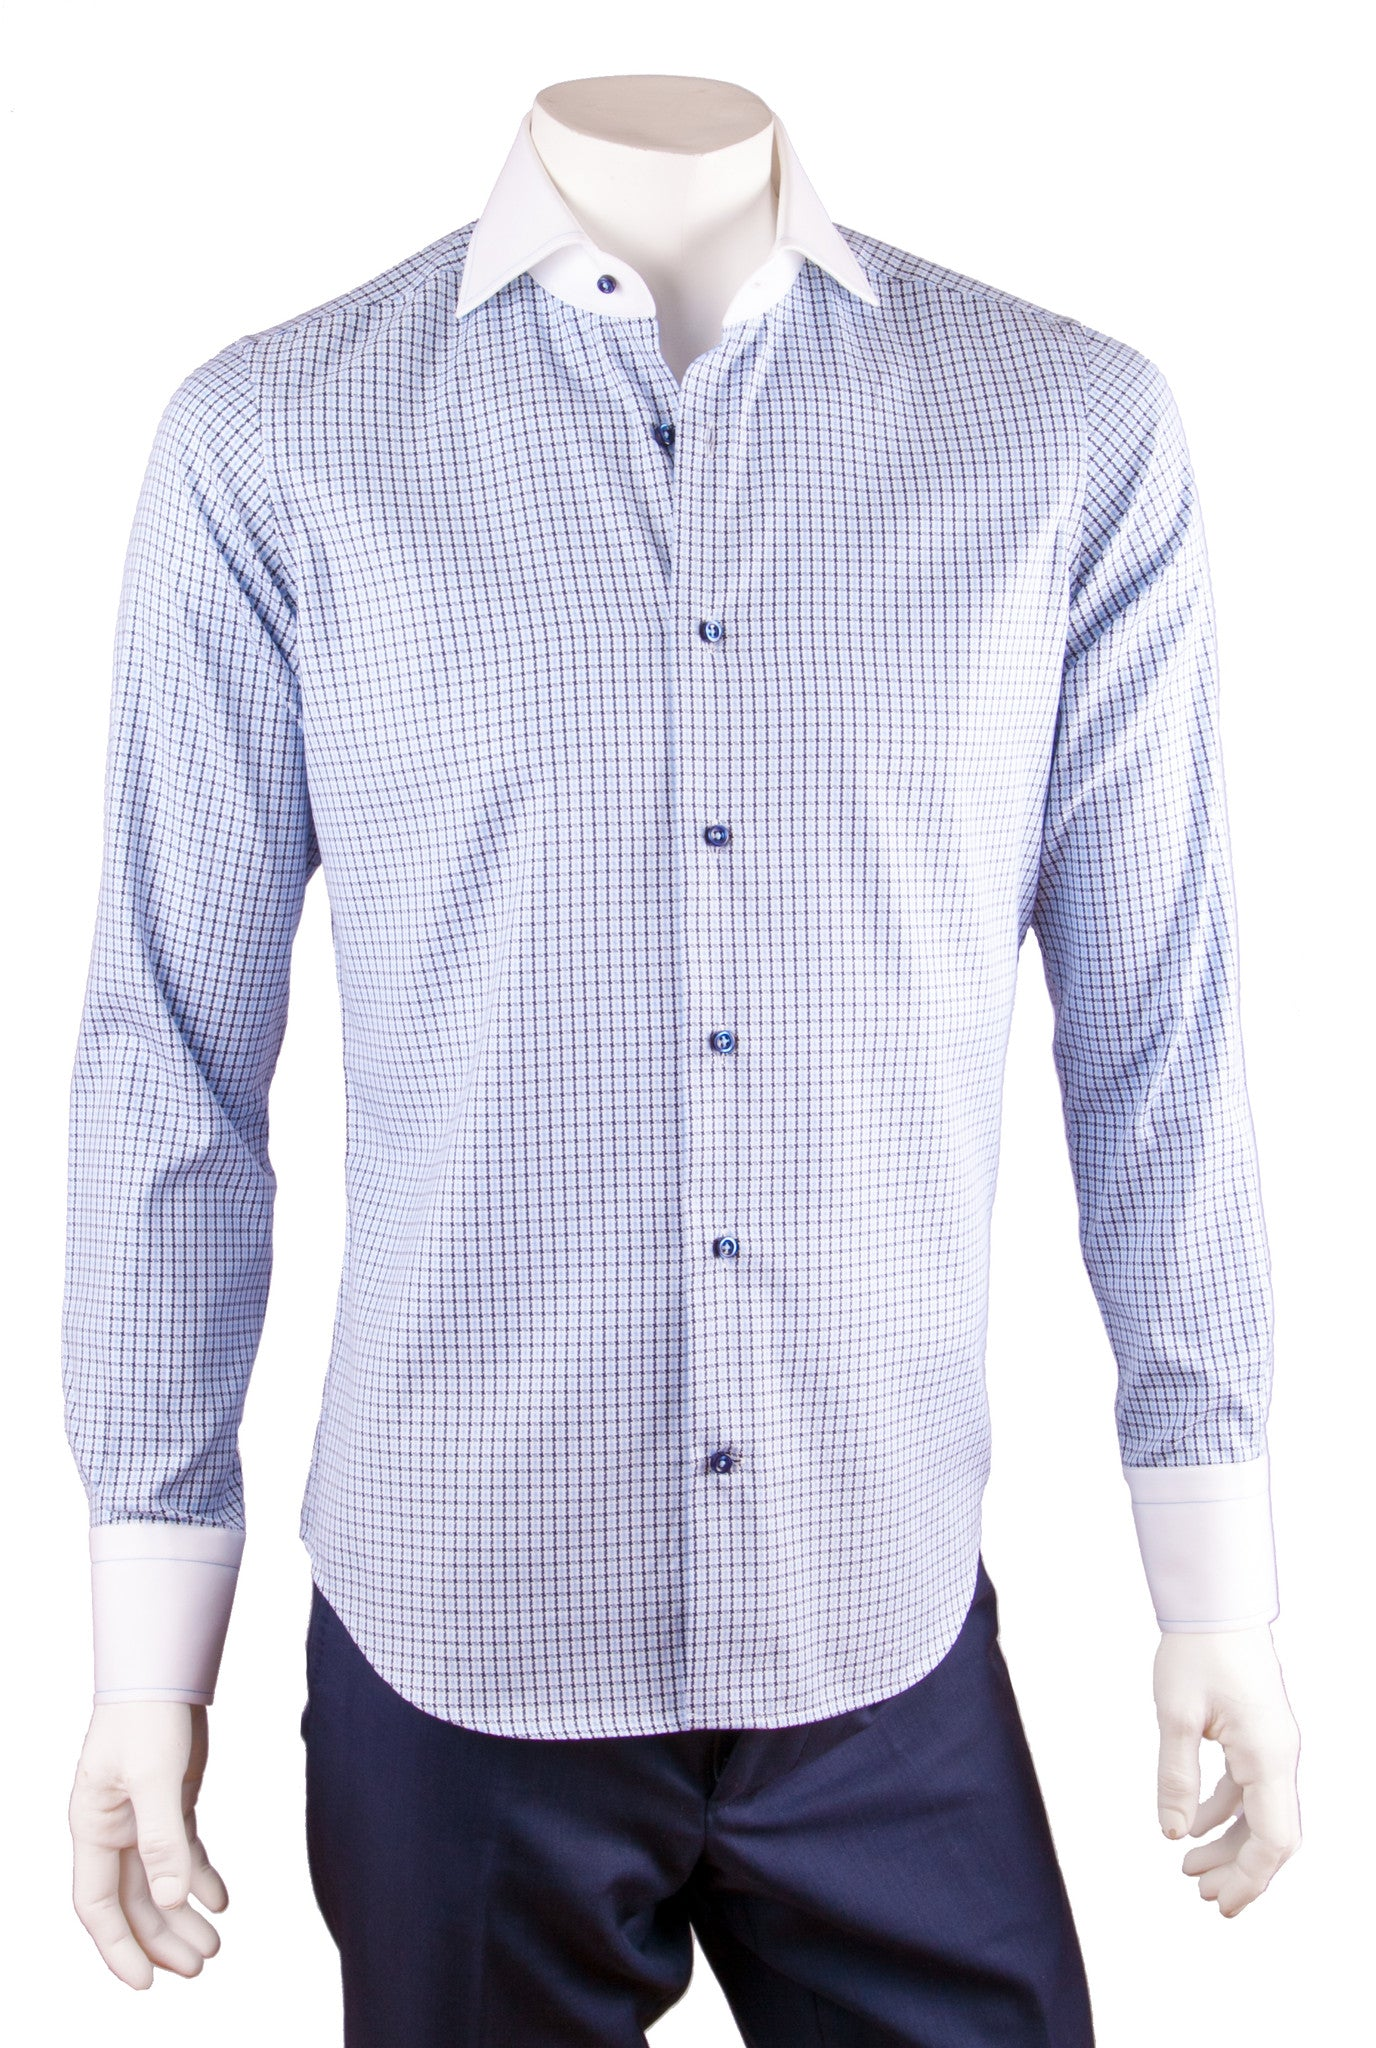 Two-Tone Check Print Cotton Dress Shirt